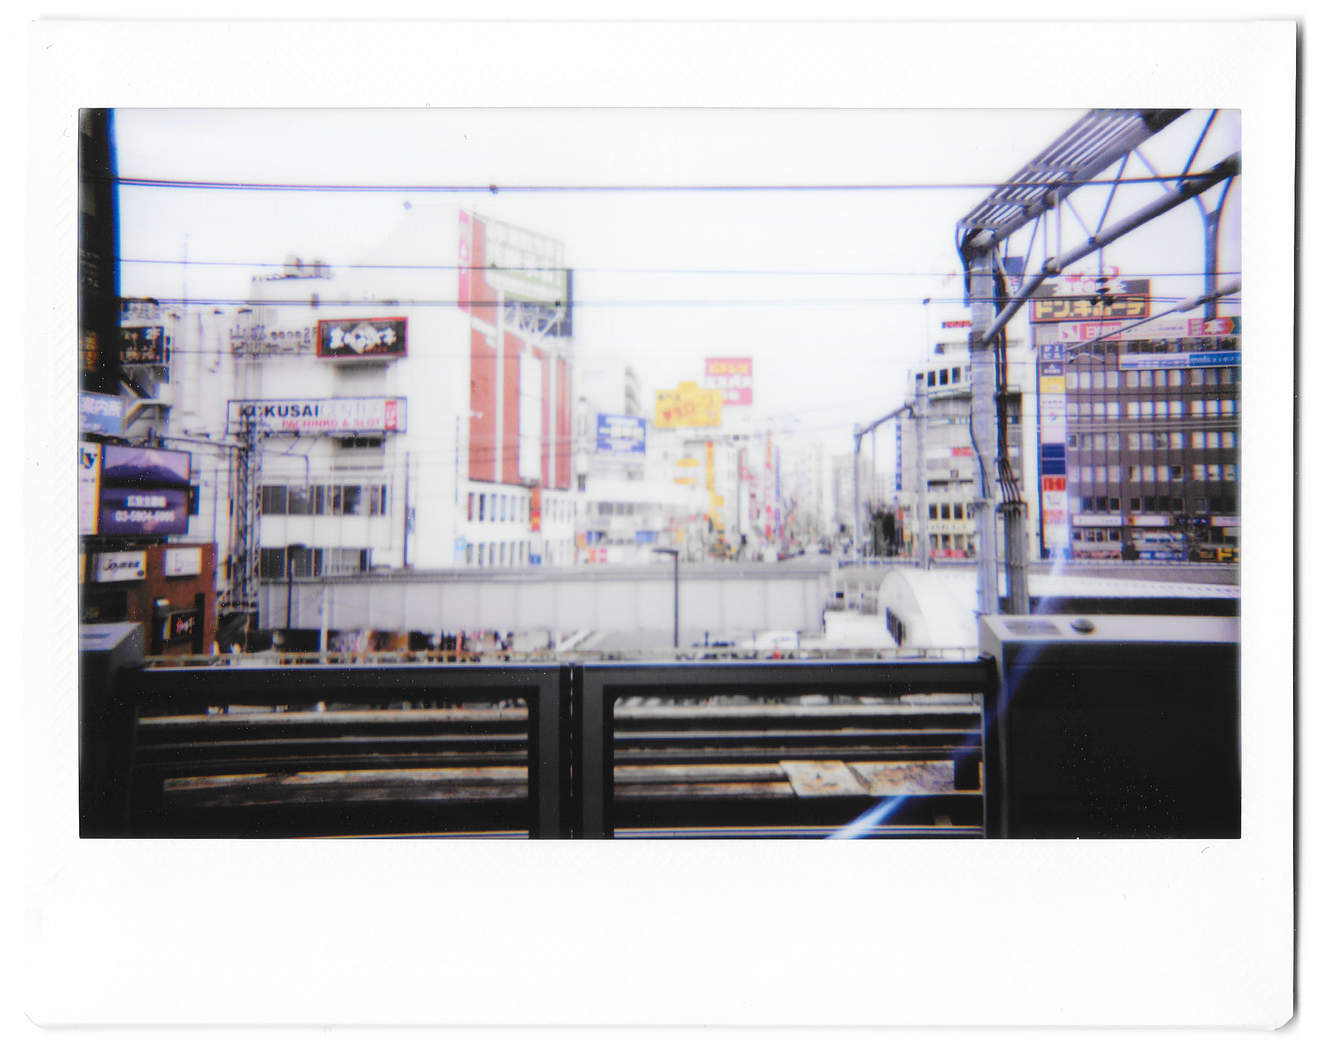 """Instant photo for Day 93 of """"A Year in an Instant"""" by Nuno Coelho Santos"""